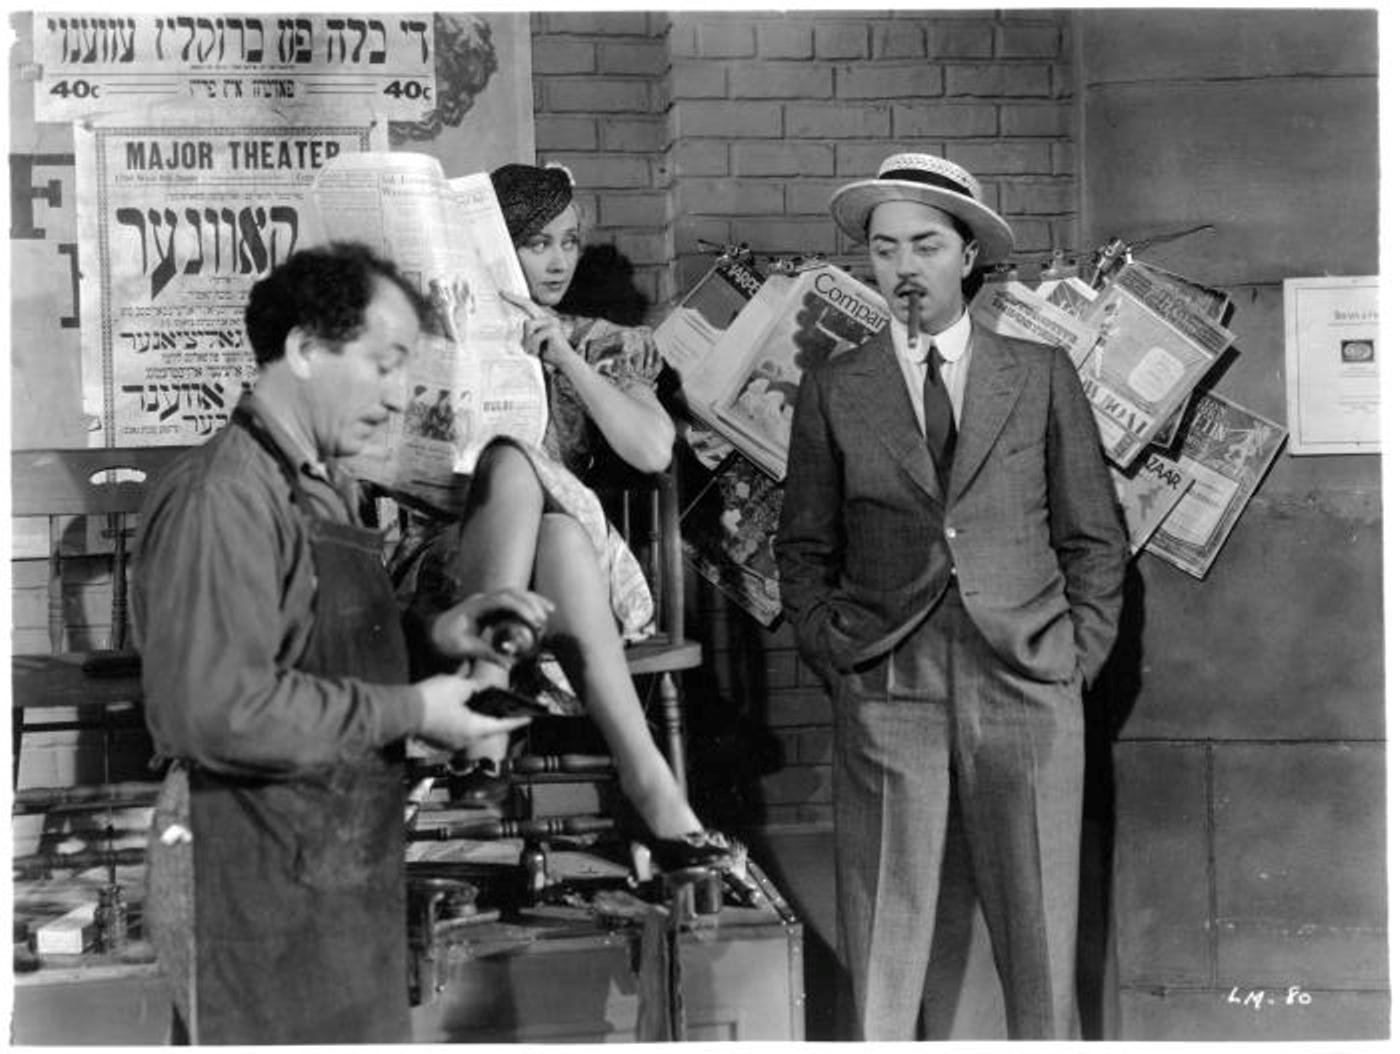 Here we have Armand Wright, Joan Blondell, & William Powell from 1932's Lawyer Man.